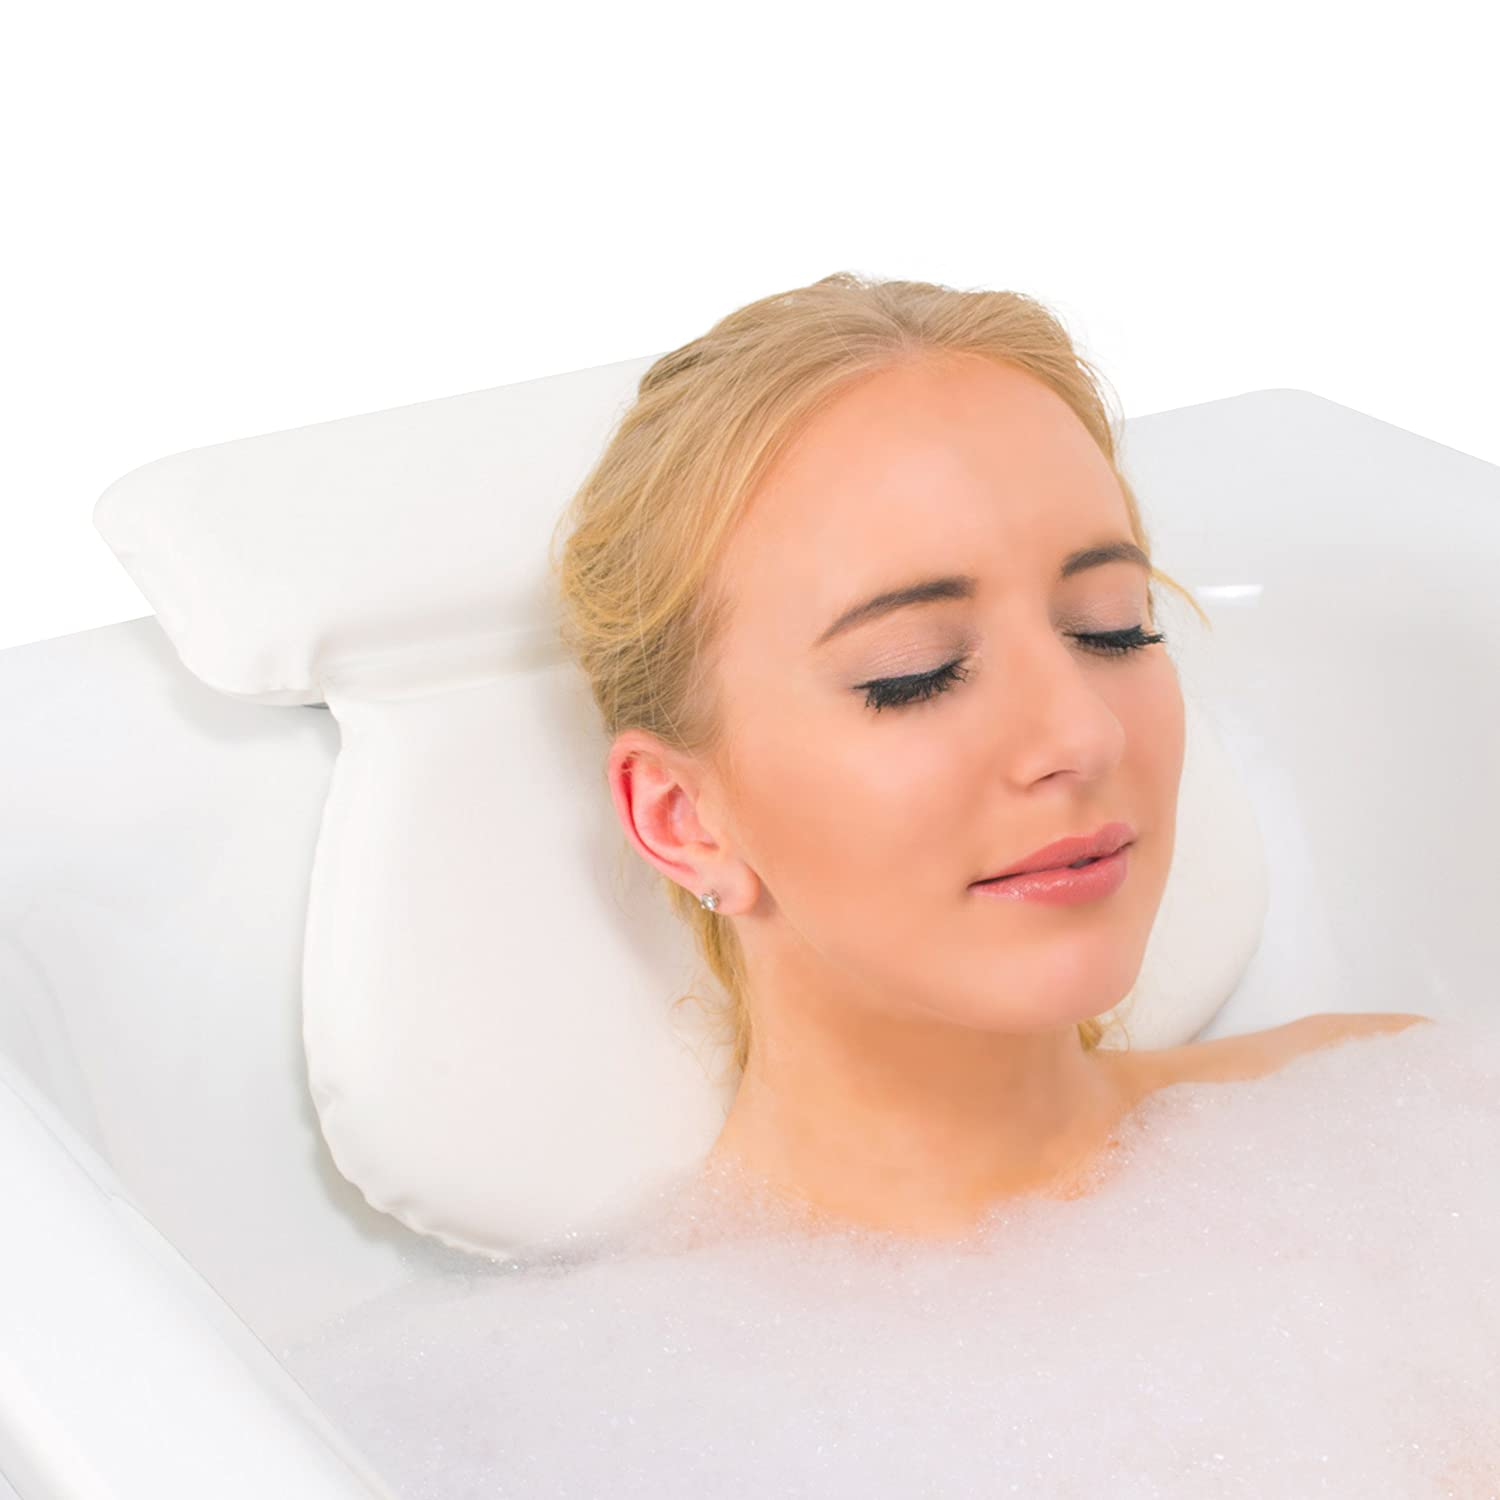 Amazon.co.uk: Bathtub Pillows: Home & Kitchen